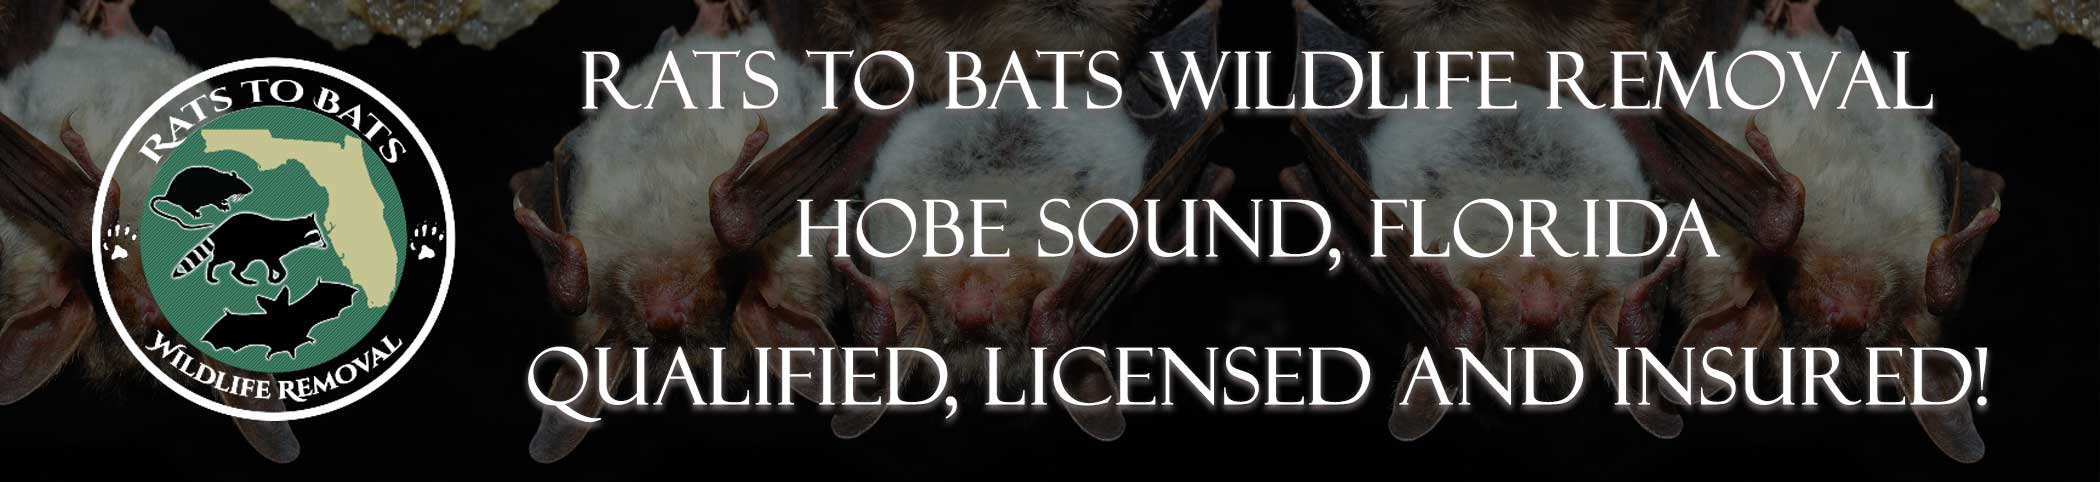 Animal Pros Bayshore Gardens Florida Bat Removal And Wildlife Removal Header Image